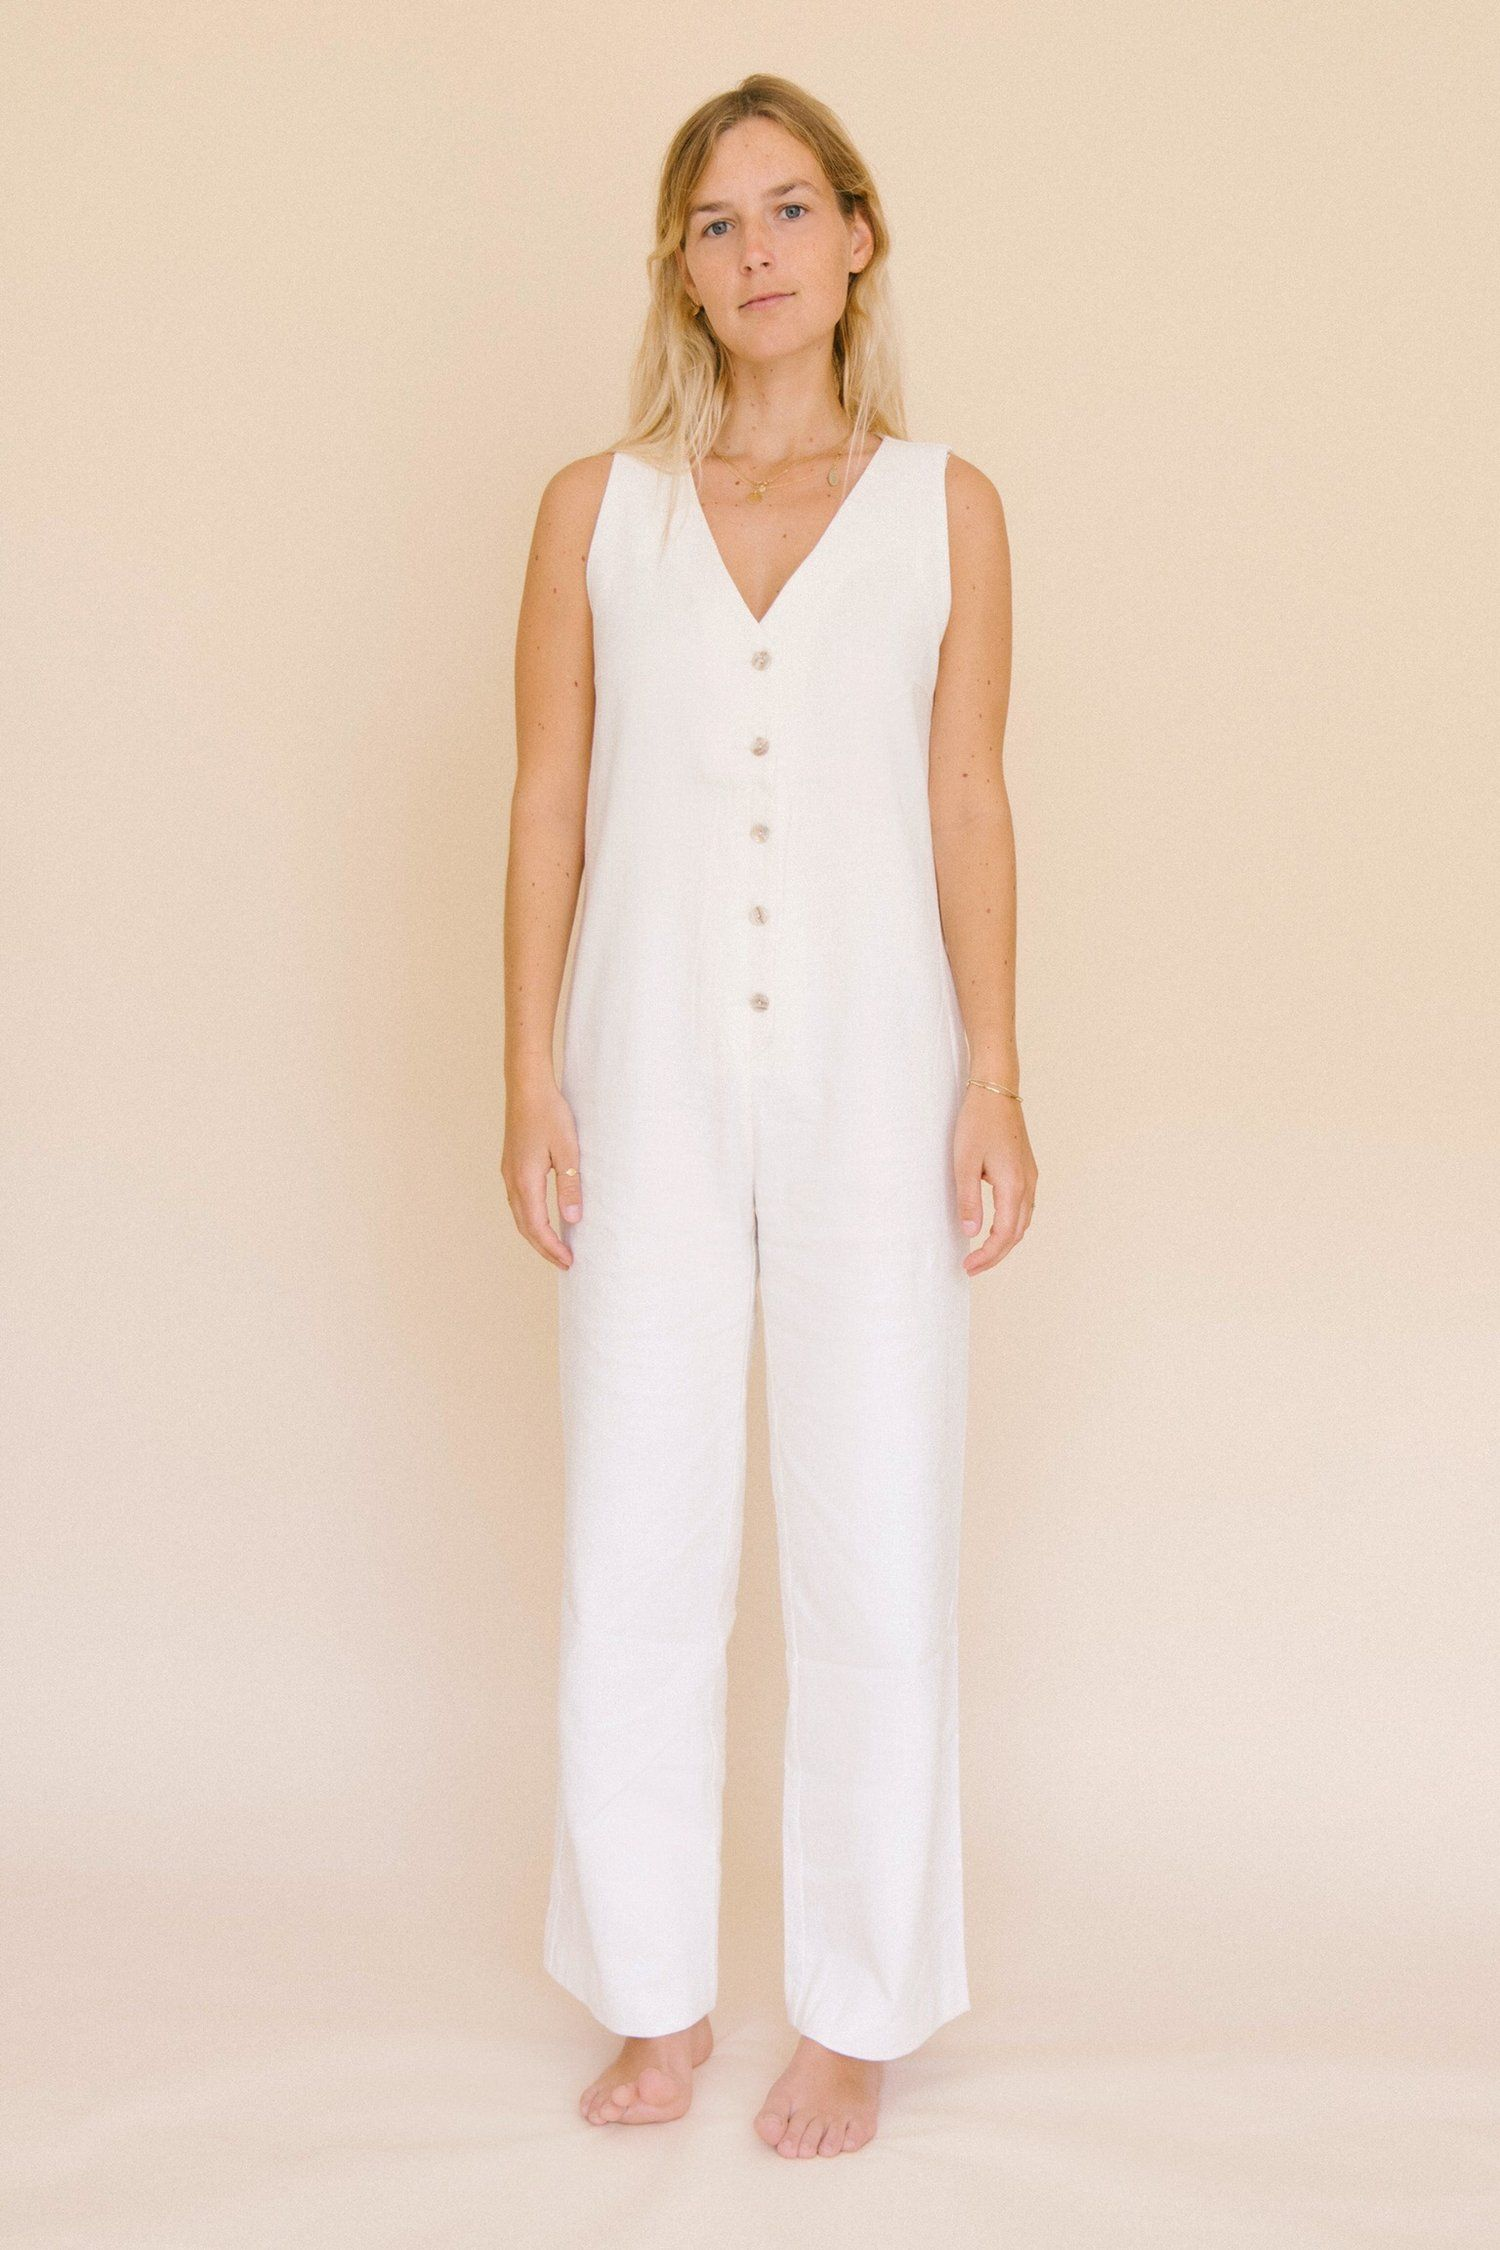 d04e215aa456 JUMPSUITS FOR WOMEN. WHITE LINEN JUMPSUIT. Linen jumpsuit with v-neckline  and side